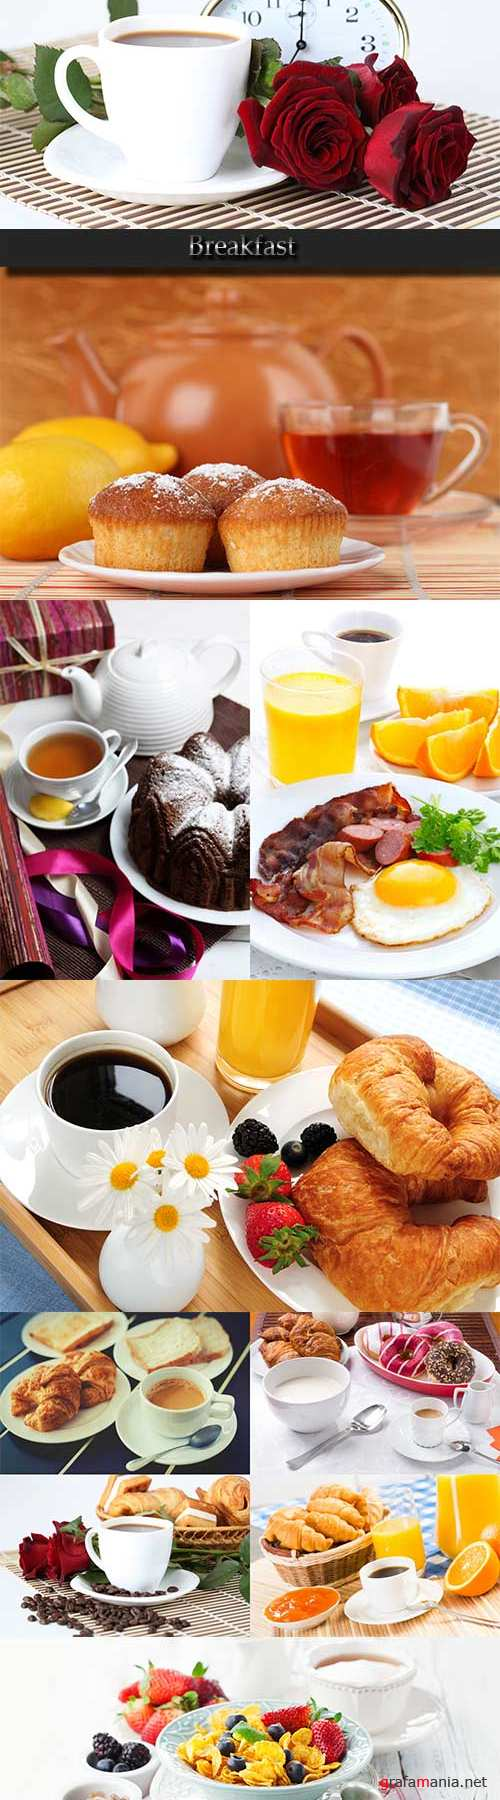 Delicious food. Breakfast